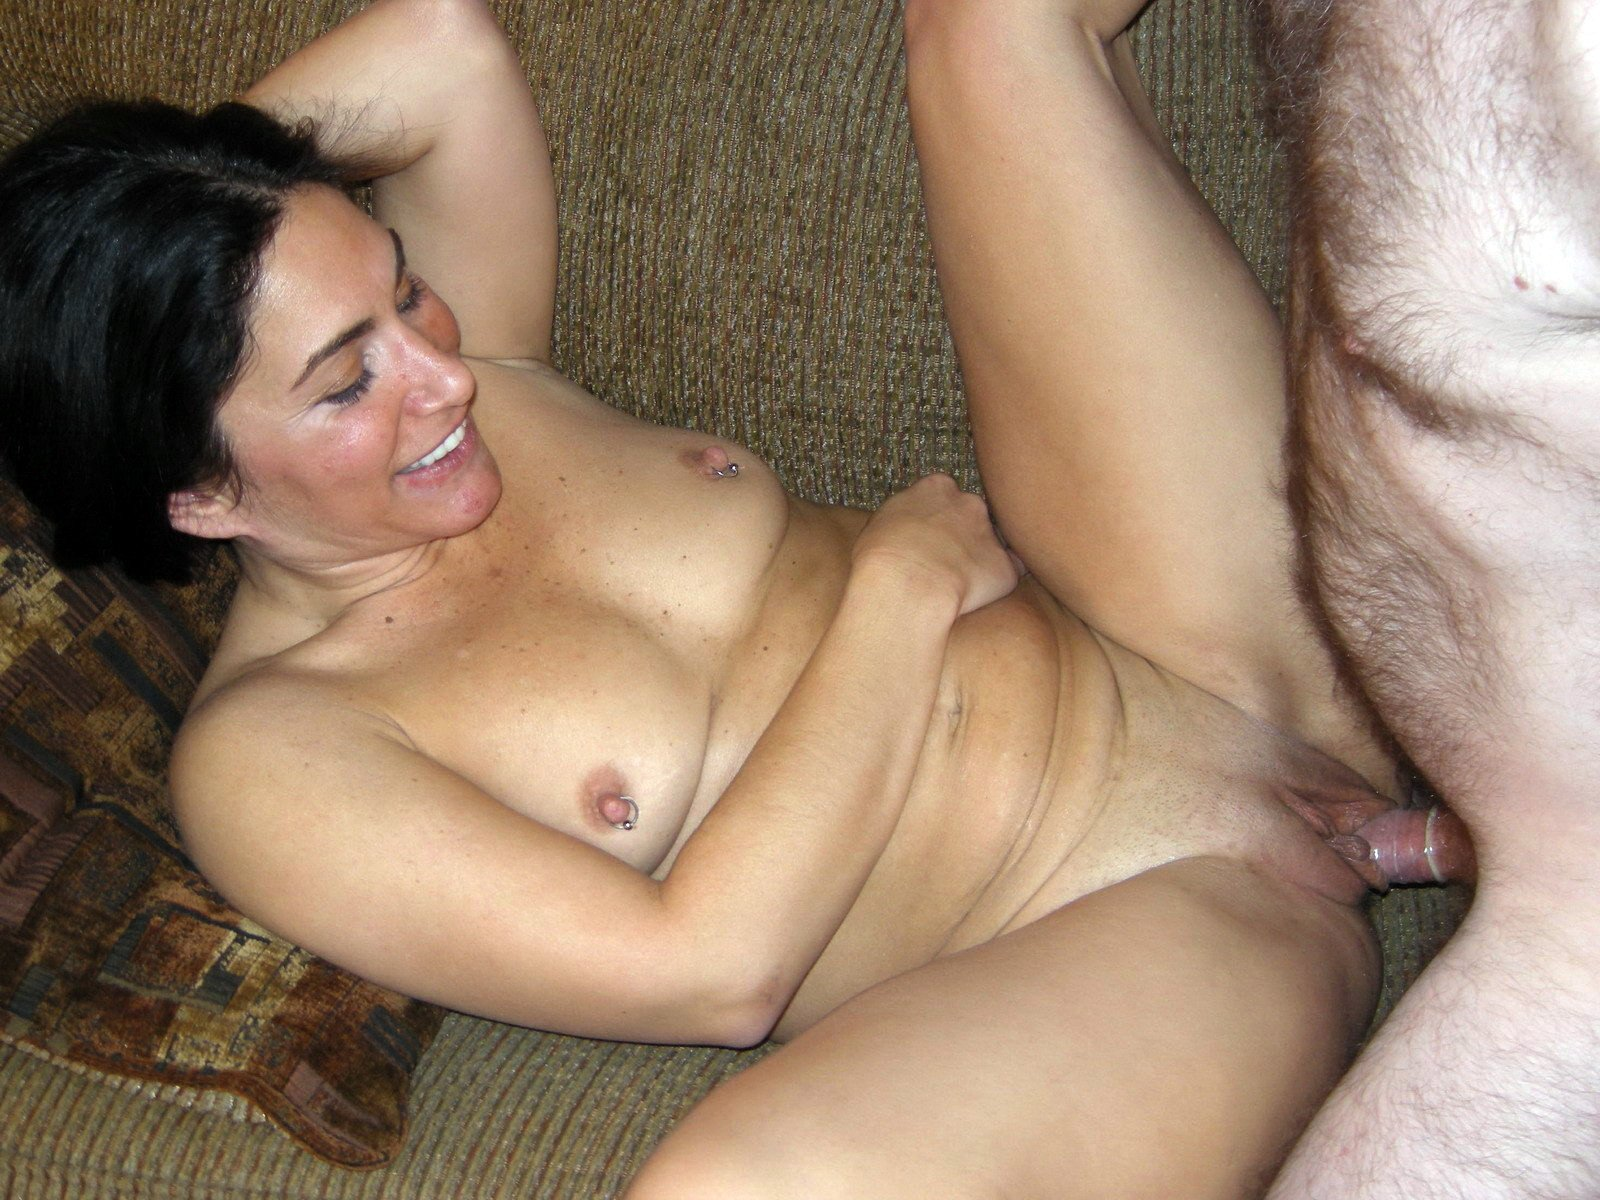 Hot and real homemade sextape